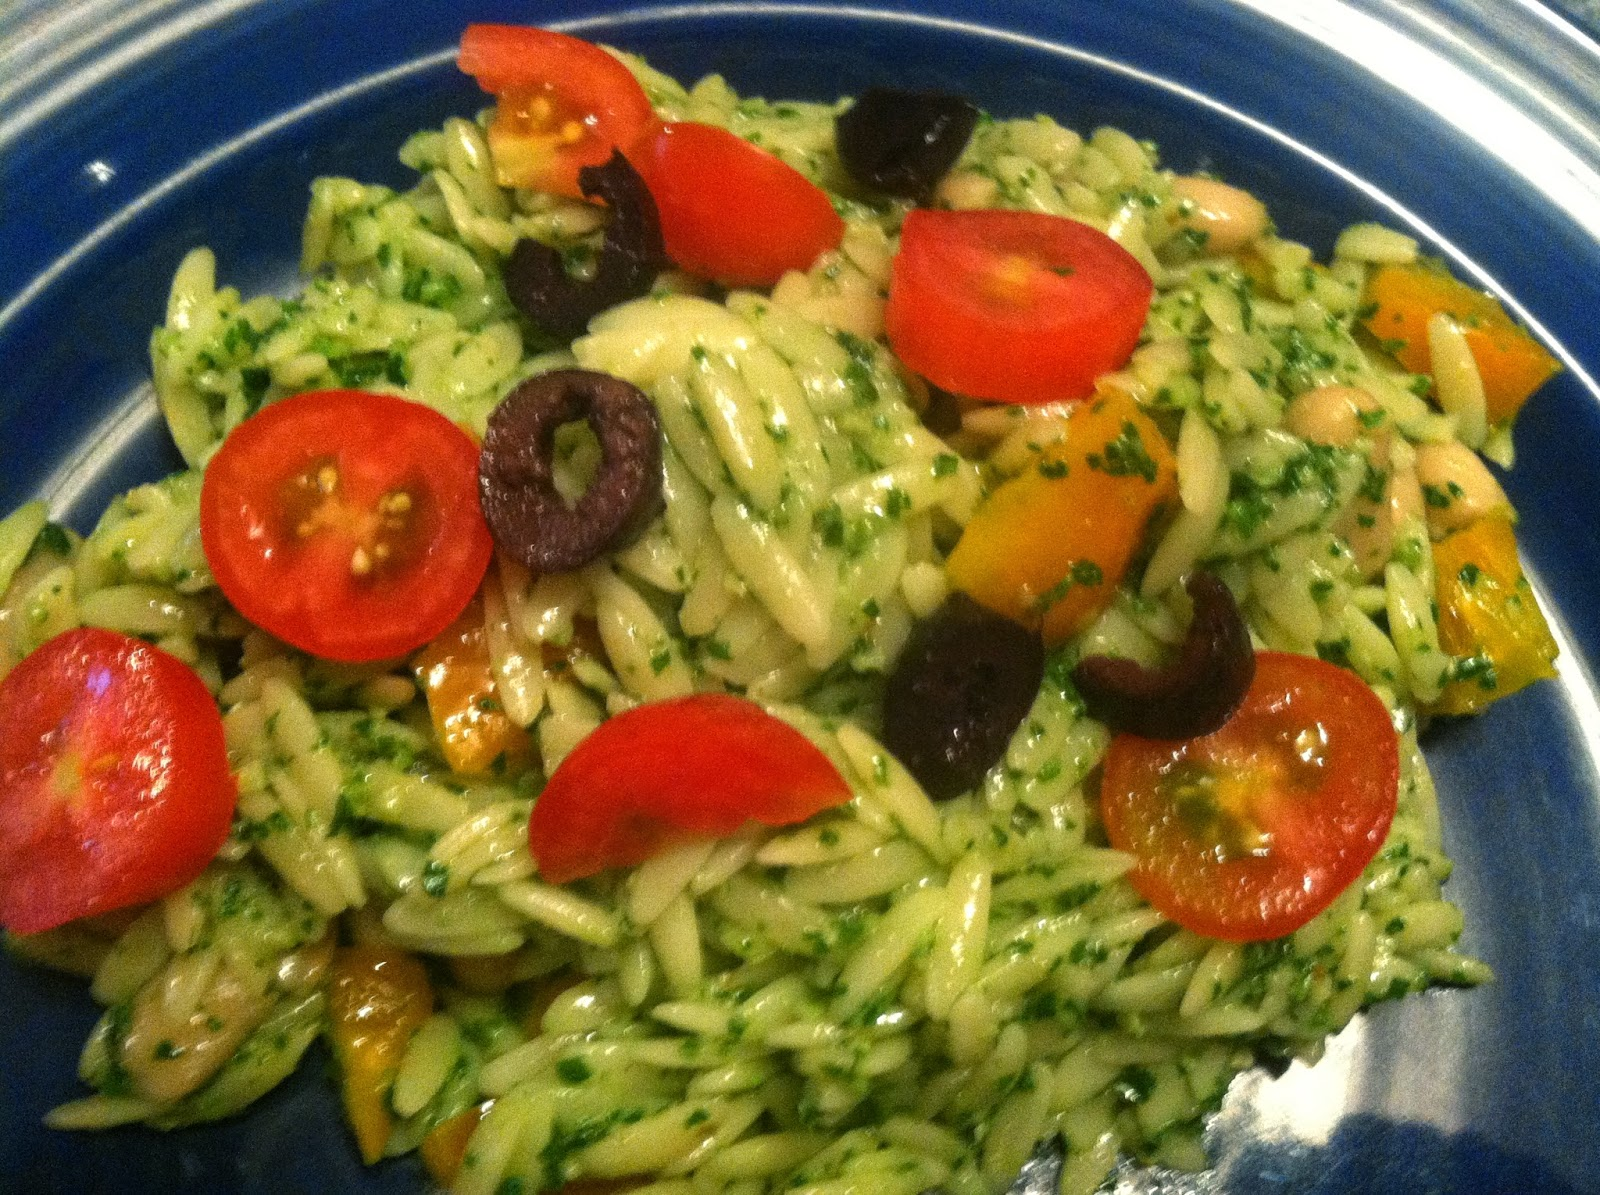 Orzo Salad with Kale Pesto for #SundaySupper picnic! Cooking Chat recipe